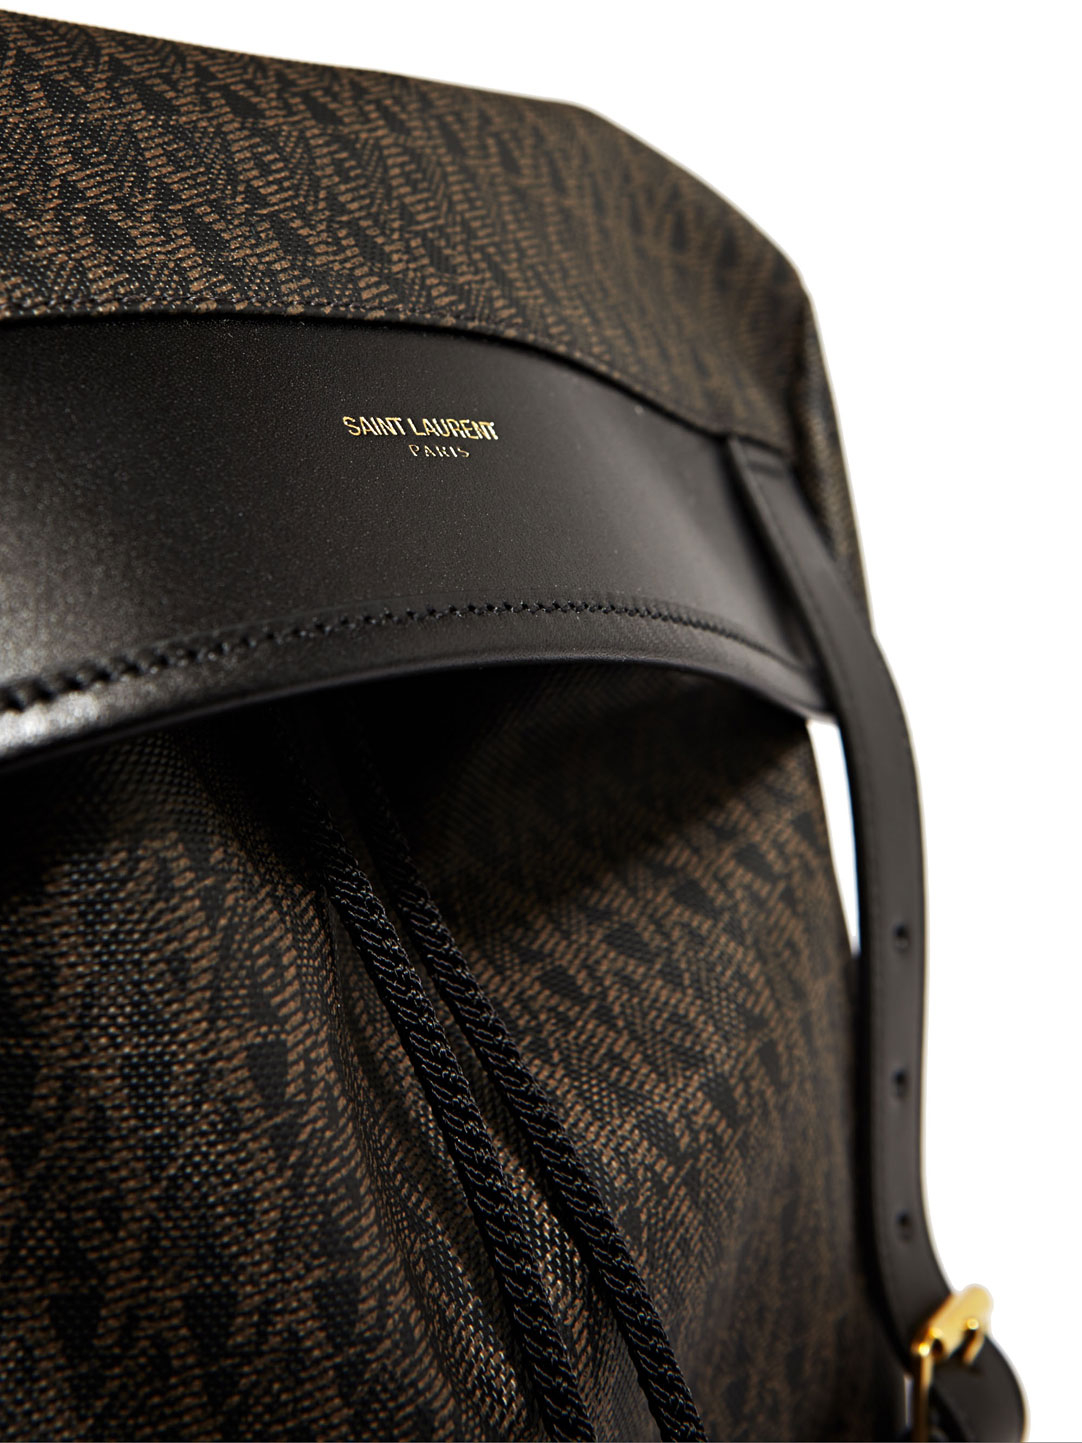 yves saint laurent camouflage backpack